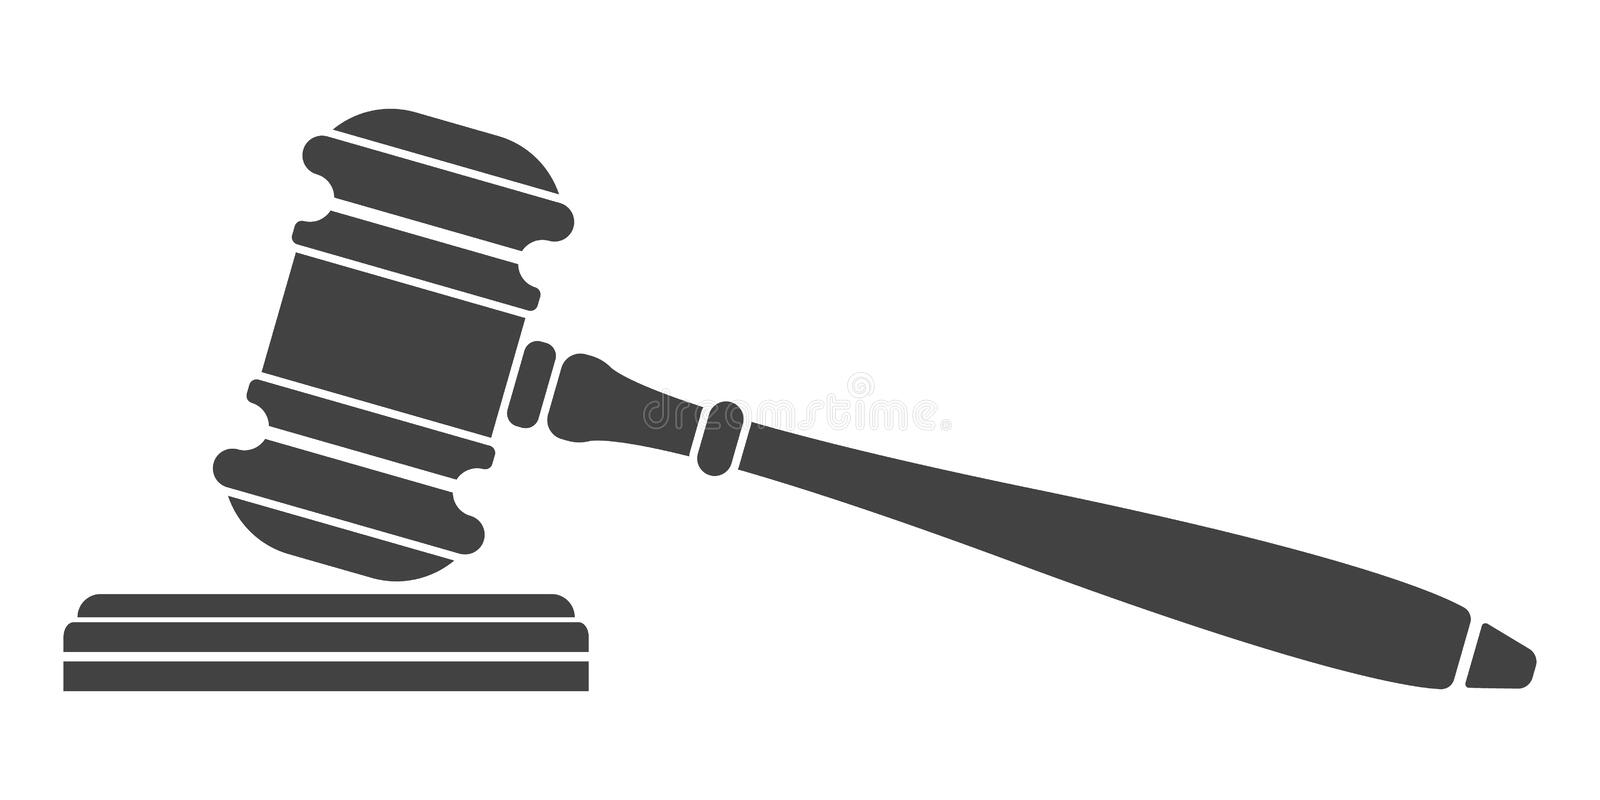 Judge gavel icon. Auction hammer. Isolated black silhouette on white background. Vector illustration of a flat design. Symbol law vector illustration